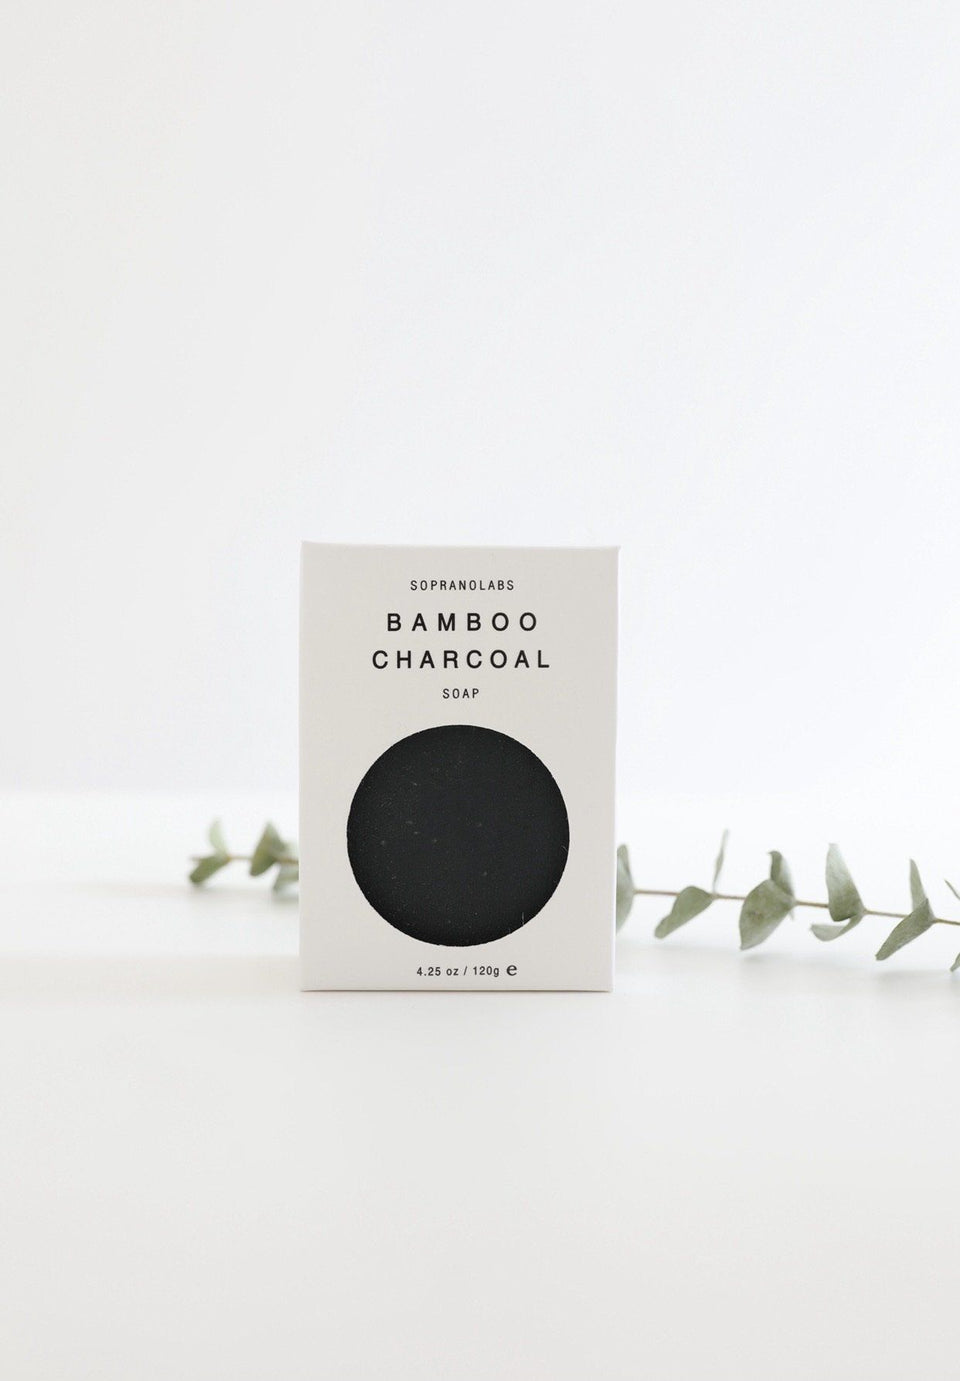 Bamboo Charcoal Vegan Soap. Gift for her/him 4.25 oz